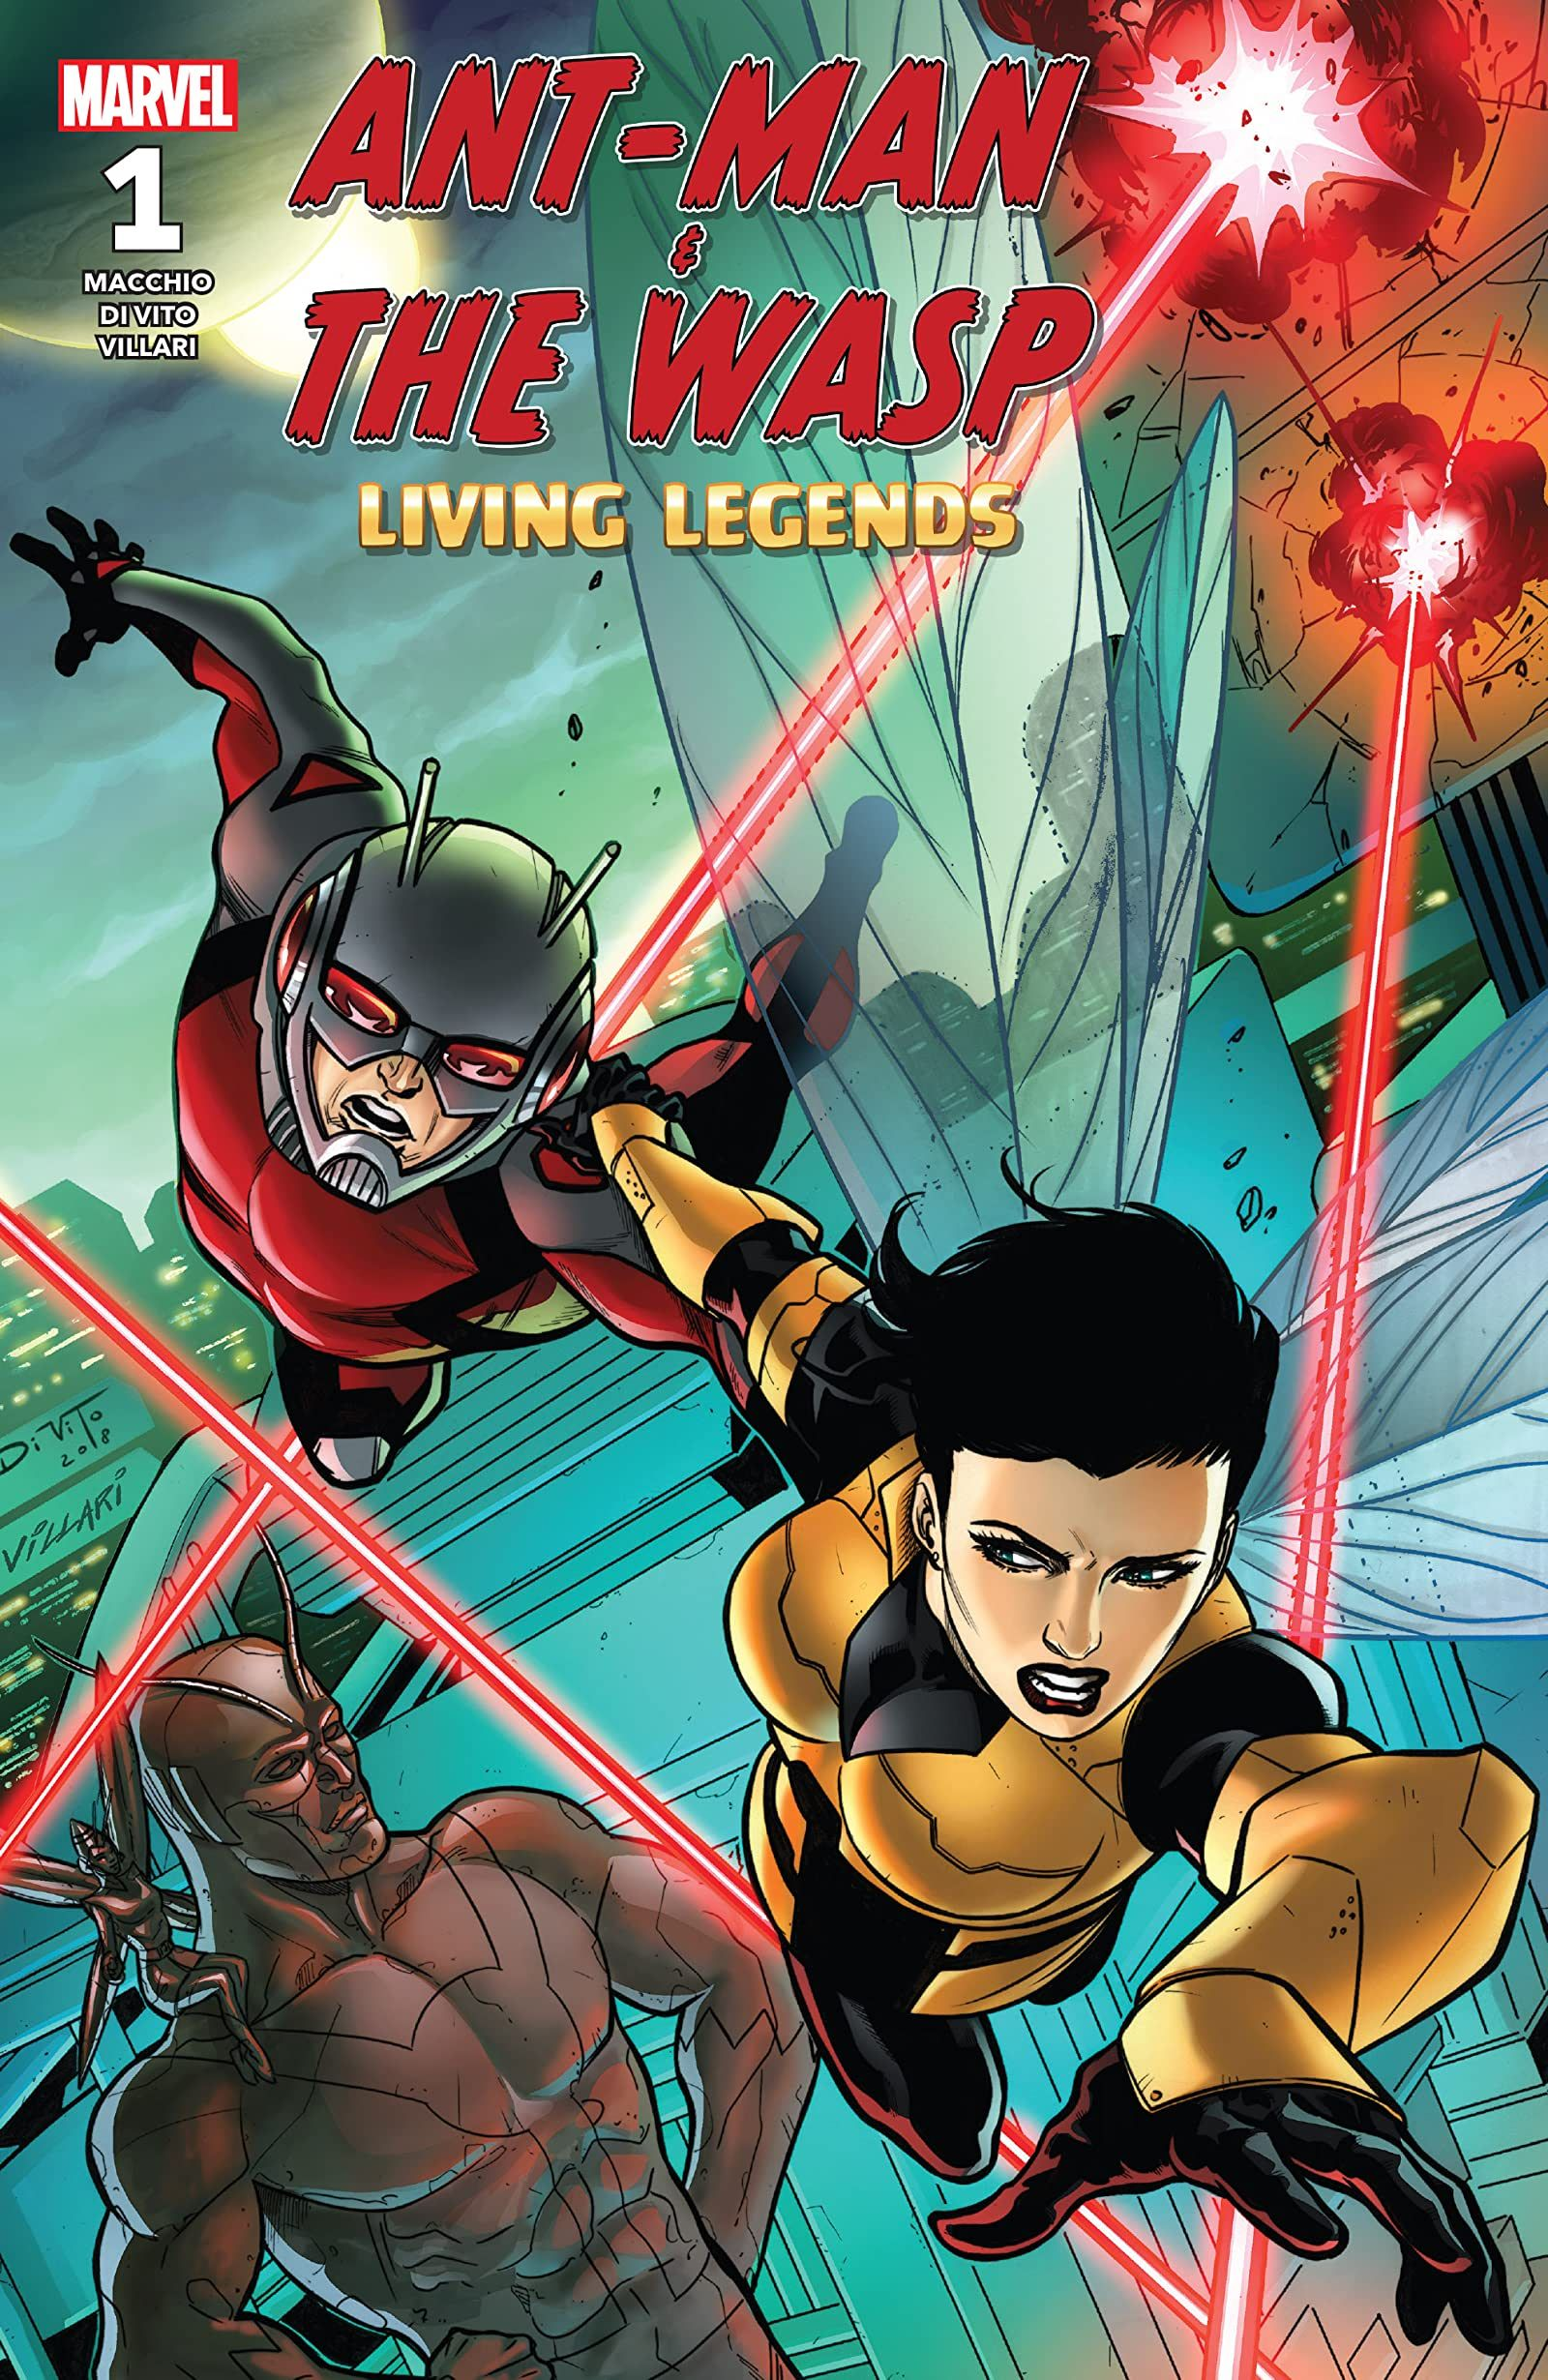 Ant Man The Wasp Living Legends 2018 1 In 2021 Living Legends Ant Man Comics